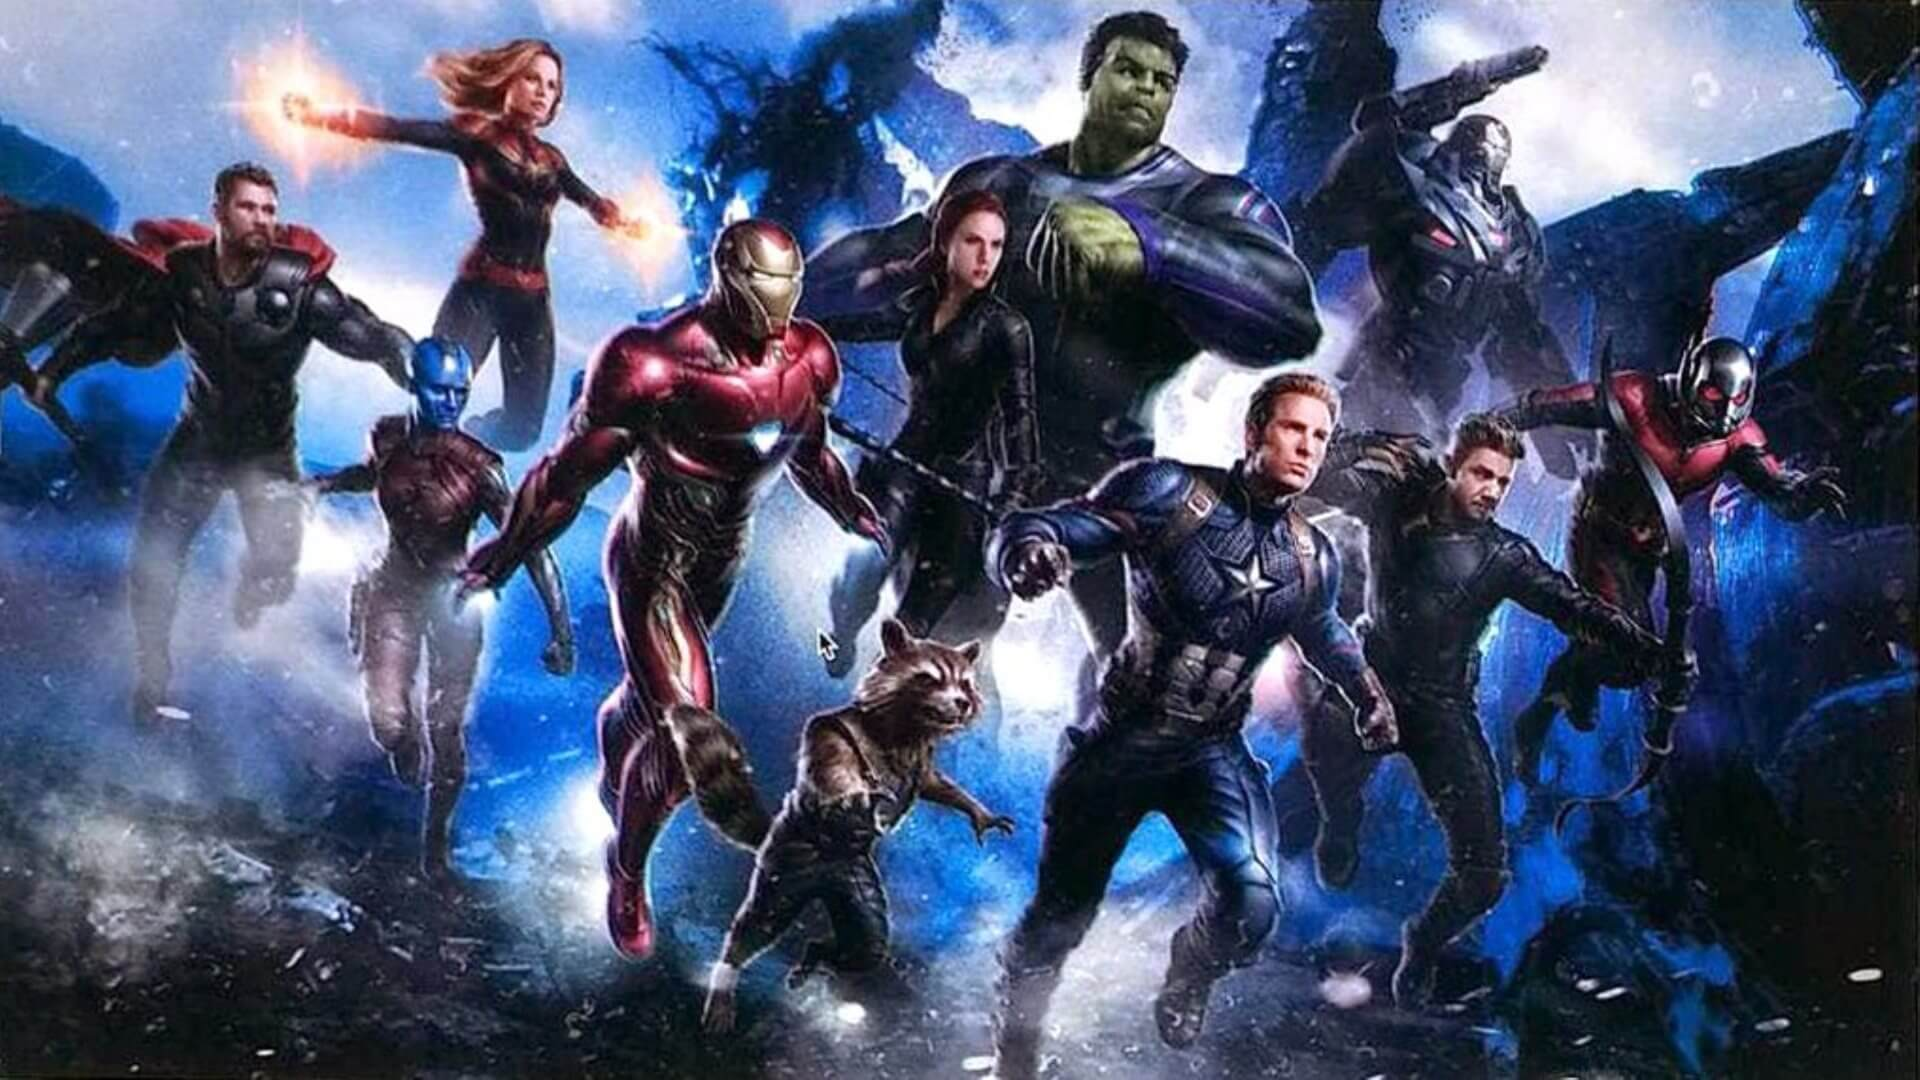 Avengers 4 Trailer May Not Reveal the Title